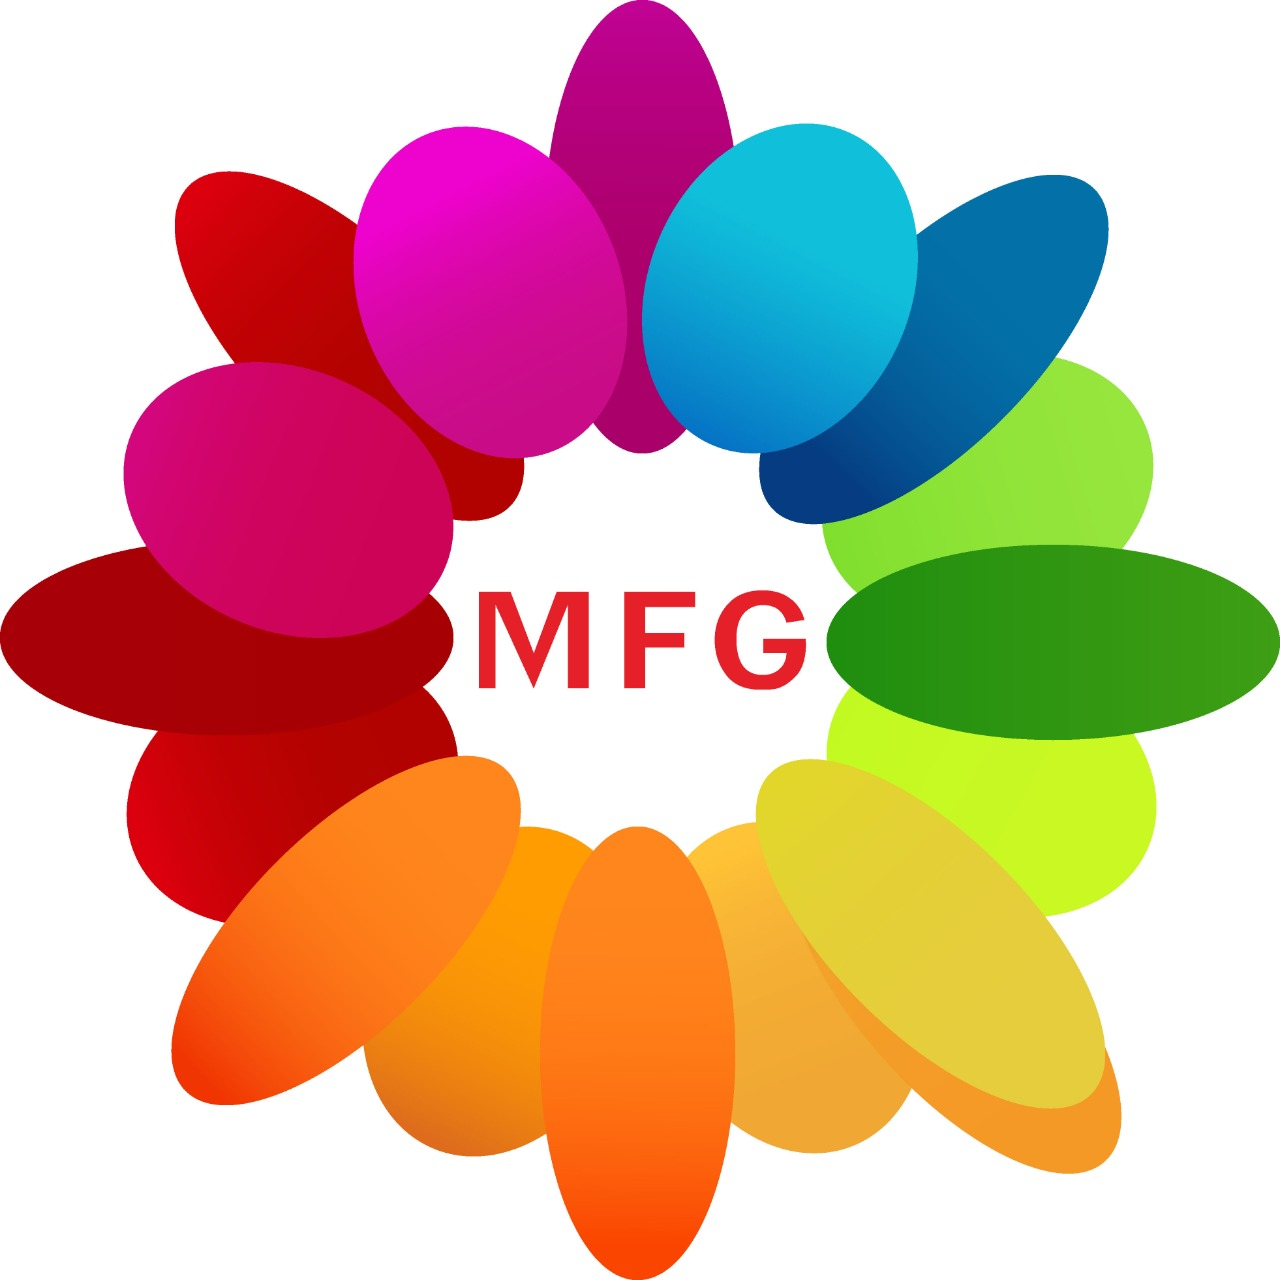 Bunch of 6 orchids, 16 pc ferero rocher box, 6 inch teddy